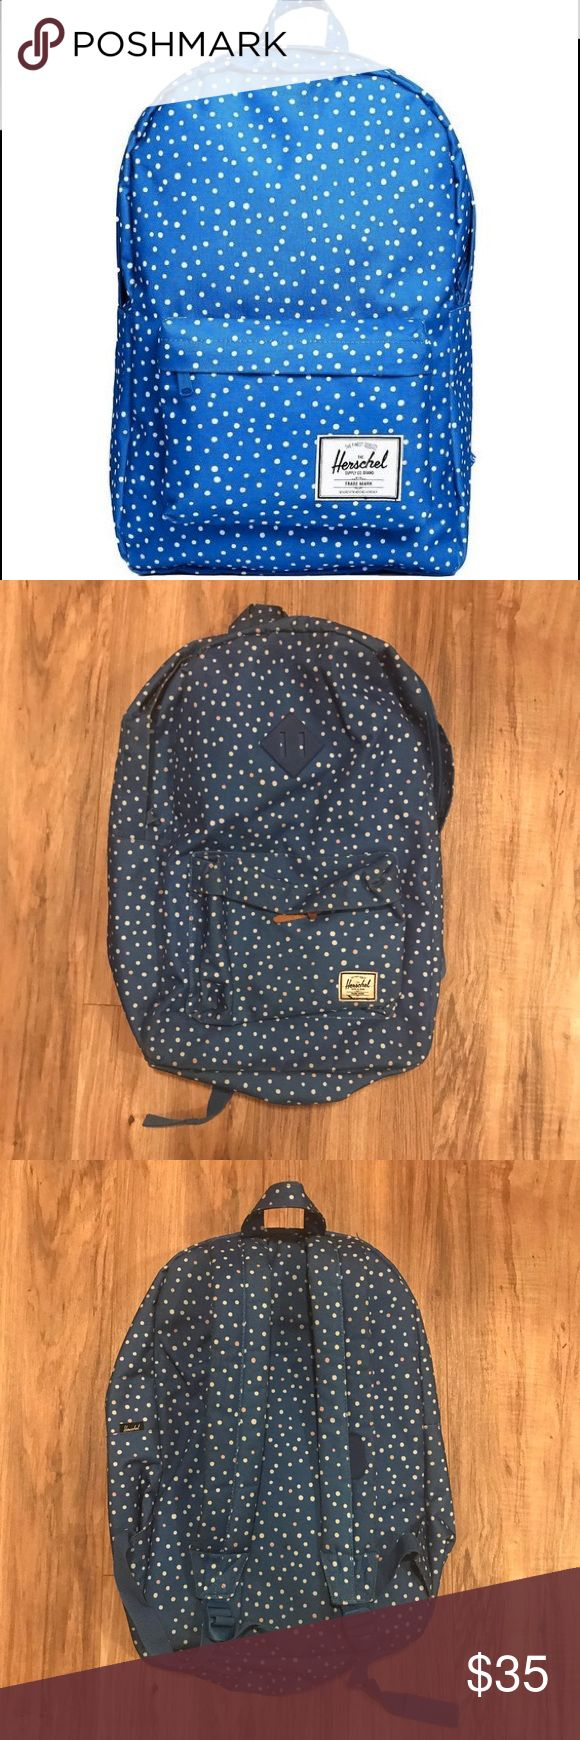 Herschel Supply Co. Heritage Backpack Herschel Supply Co Heritage Backpack, Colbalt Polka Dot/Colbalt Rubber. Gently used. Herschel Supply Company Bags Backpacks